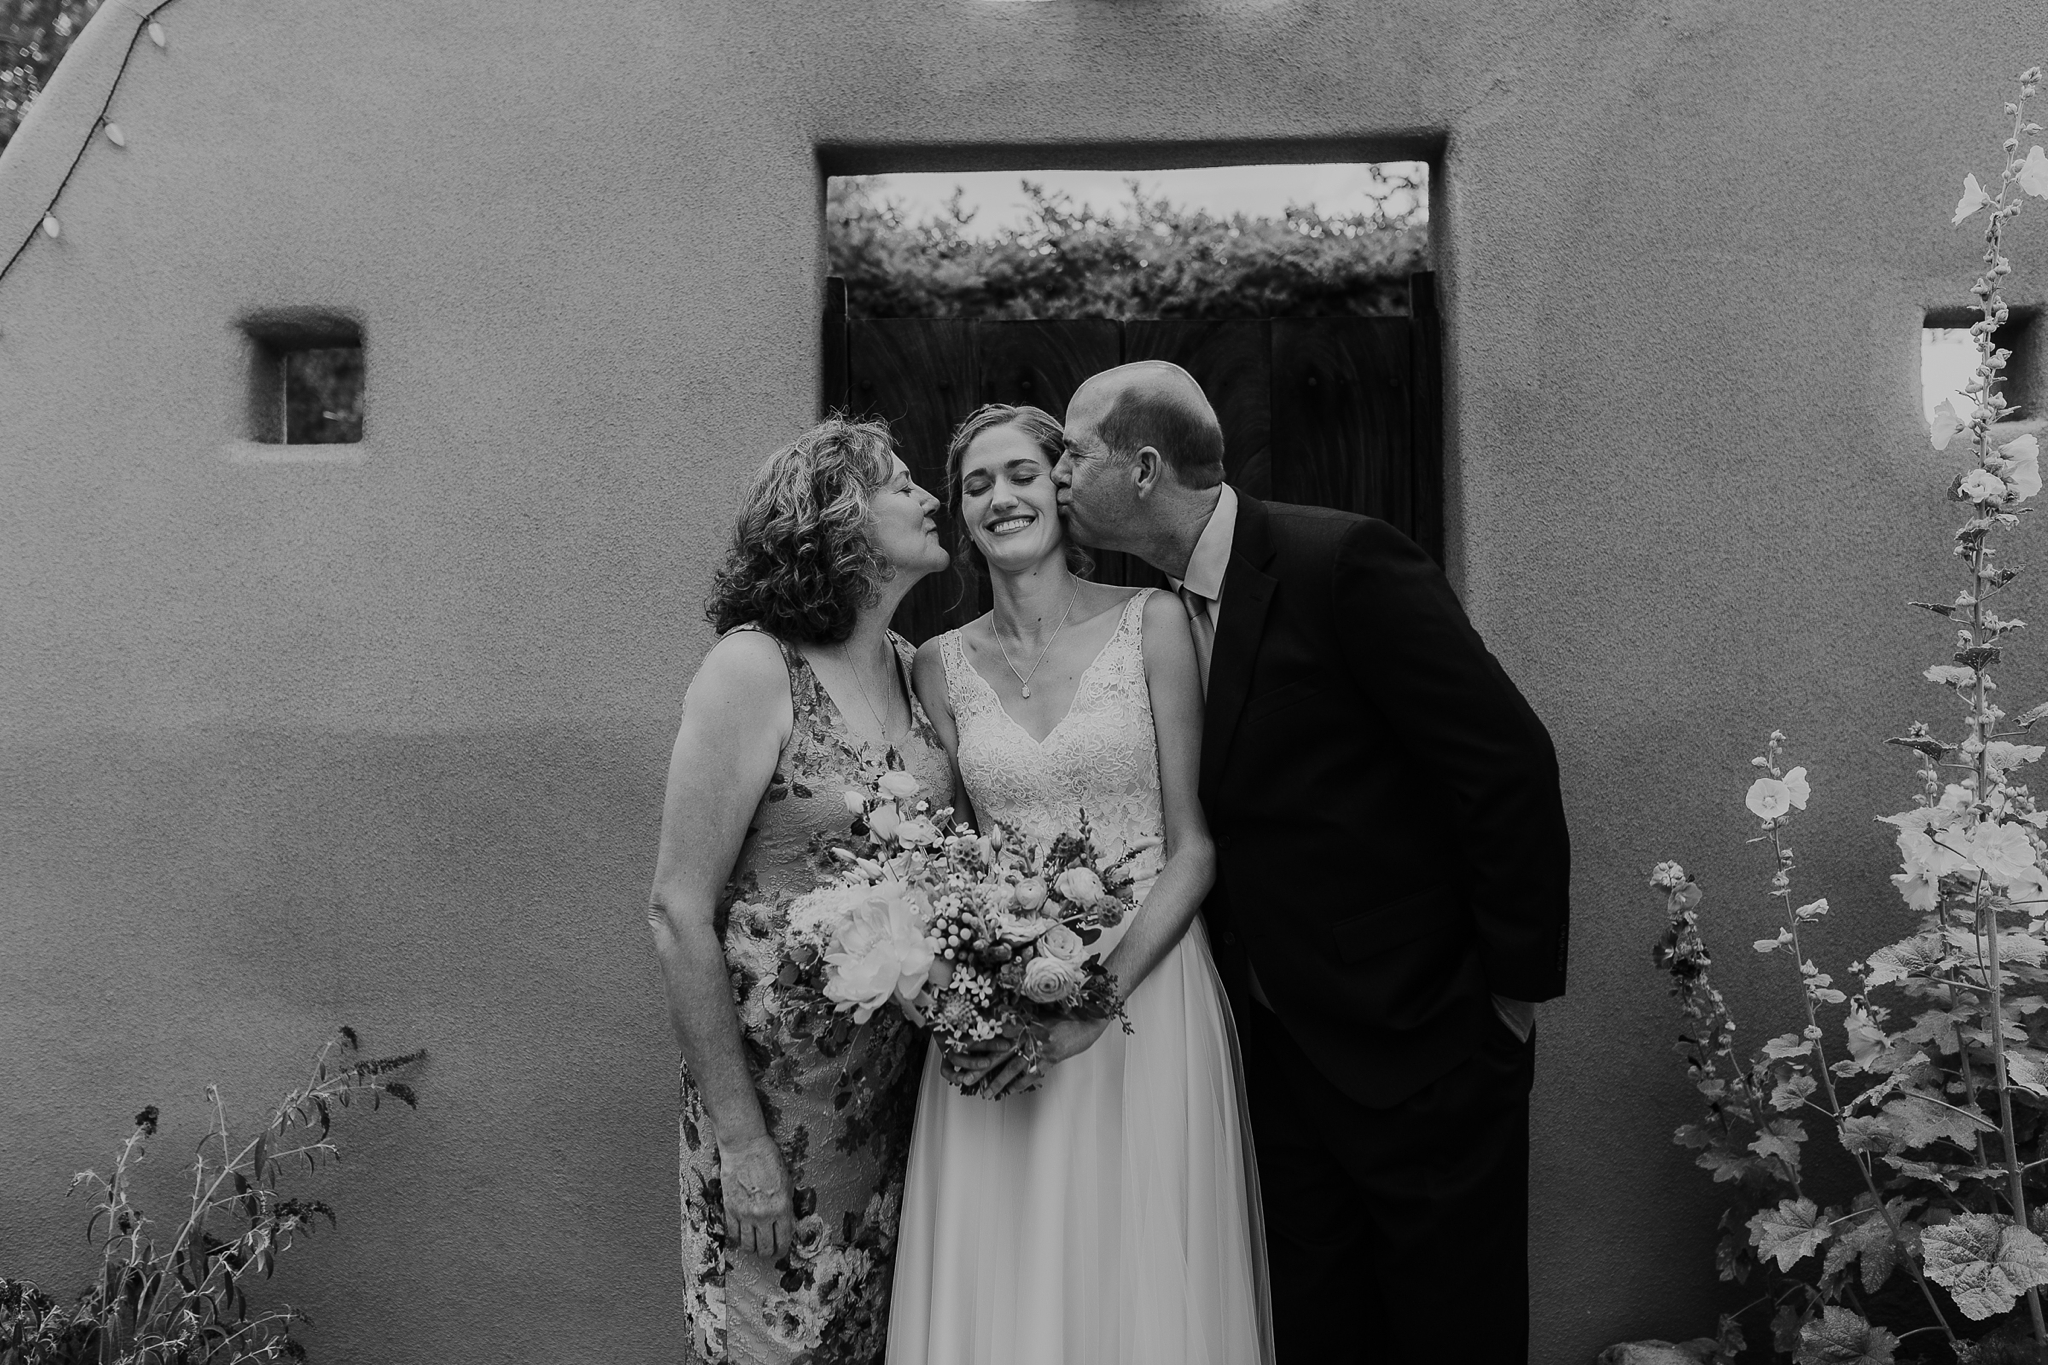 Alicia+lucia+photography+-+albuquerque+wedding+photographer+-+santa+fe+wedding+photography+-+new+mexico+wedding+photographer+-+new+mexico+wedding+-+new+mexico+wedding+-+albuquerque+wedding+-+casa+perea+wedding+-+summer+wedding_0040.jpg